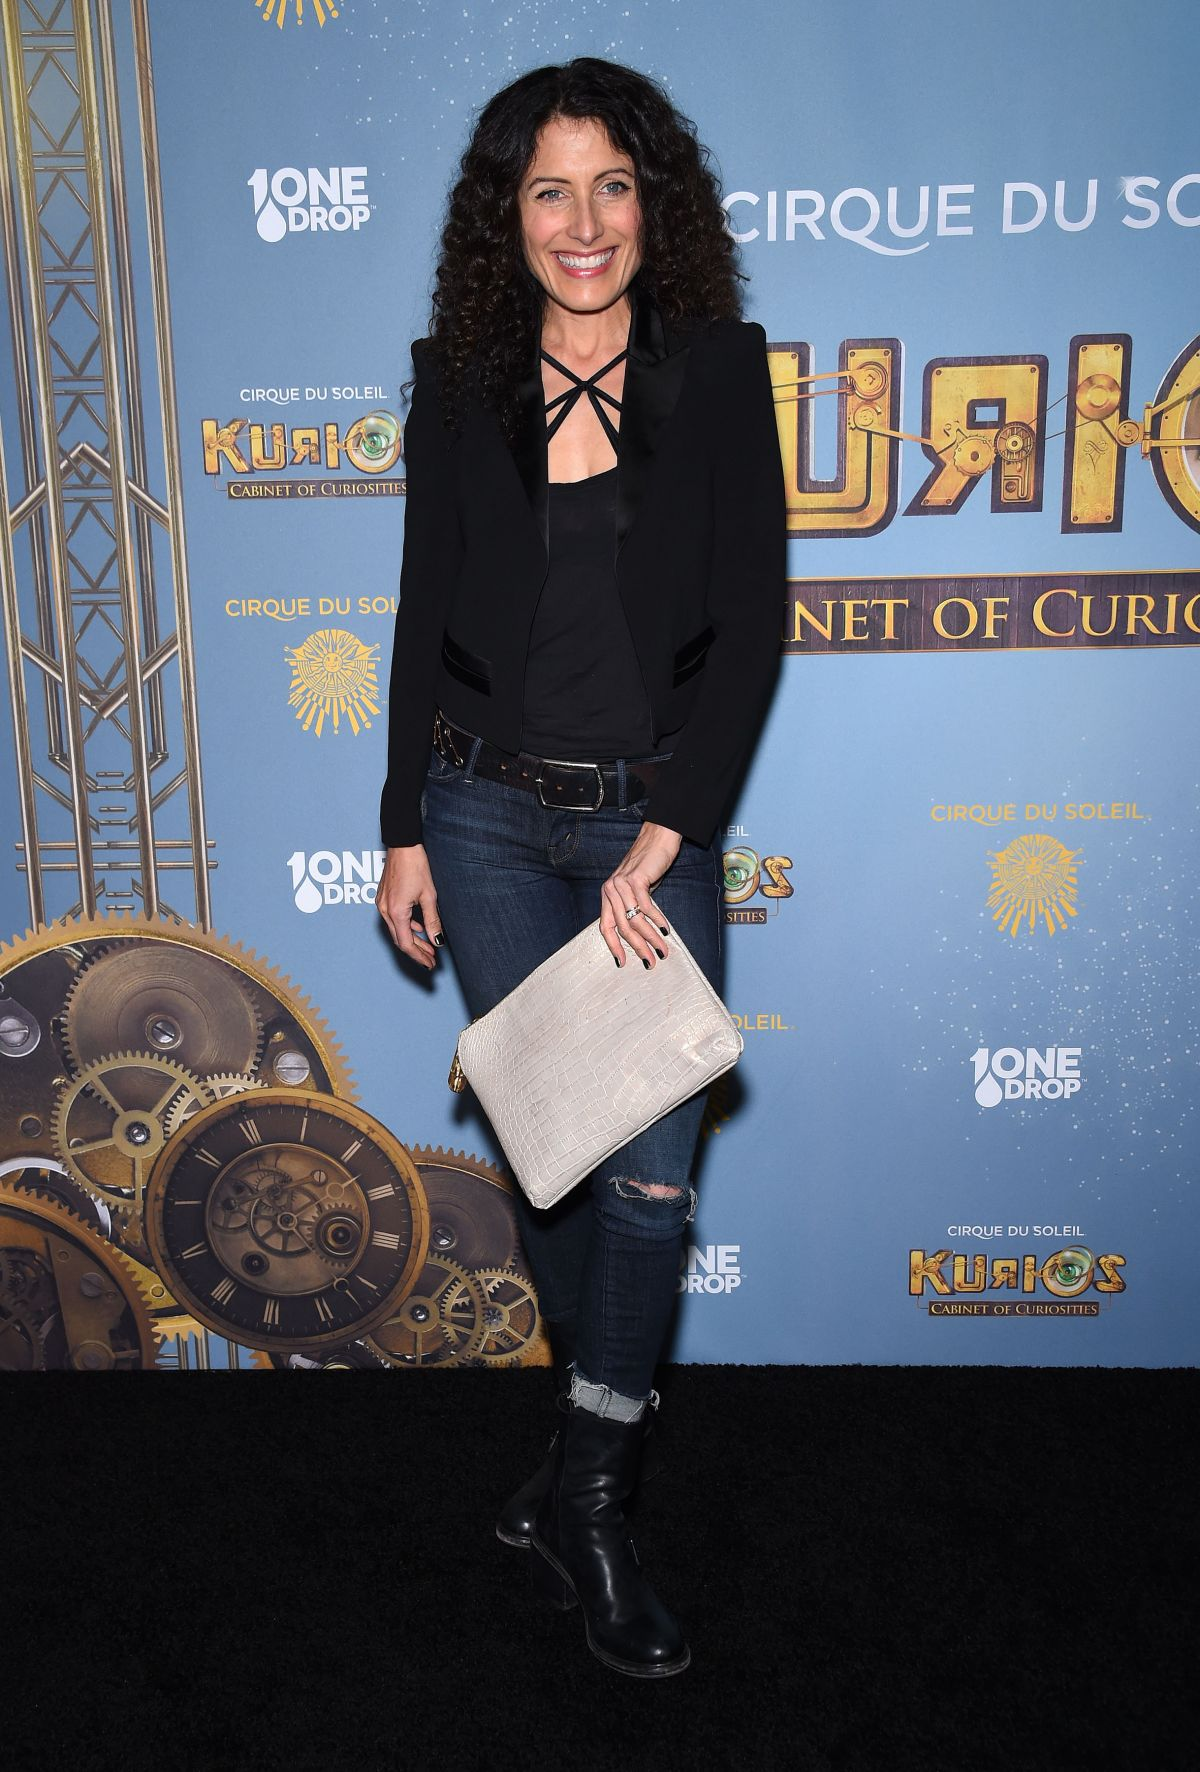 LISA EDELSTEIN at Cirque Du Soleil's Kurious-Cabinet of Curiosites Opening Night in Los Angeles 12/09/2015